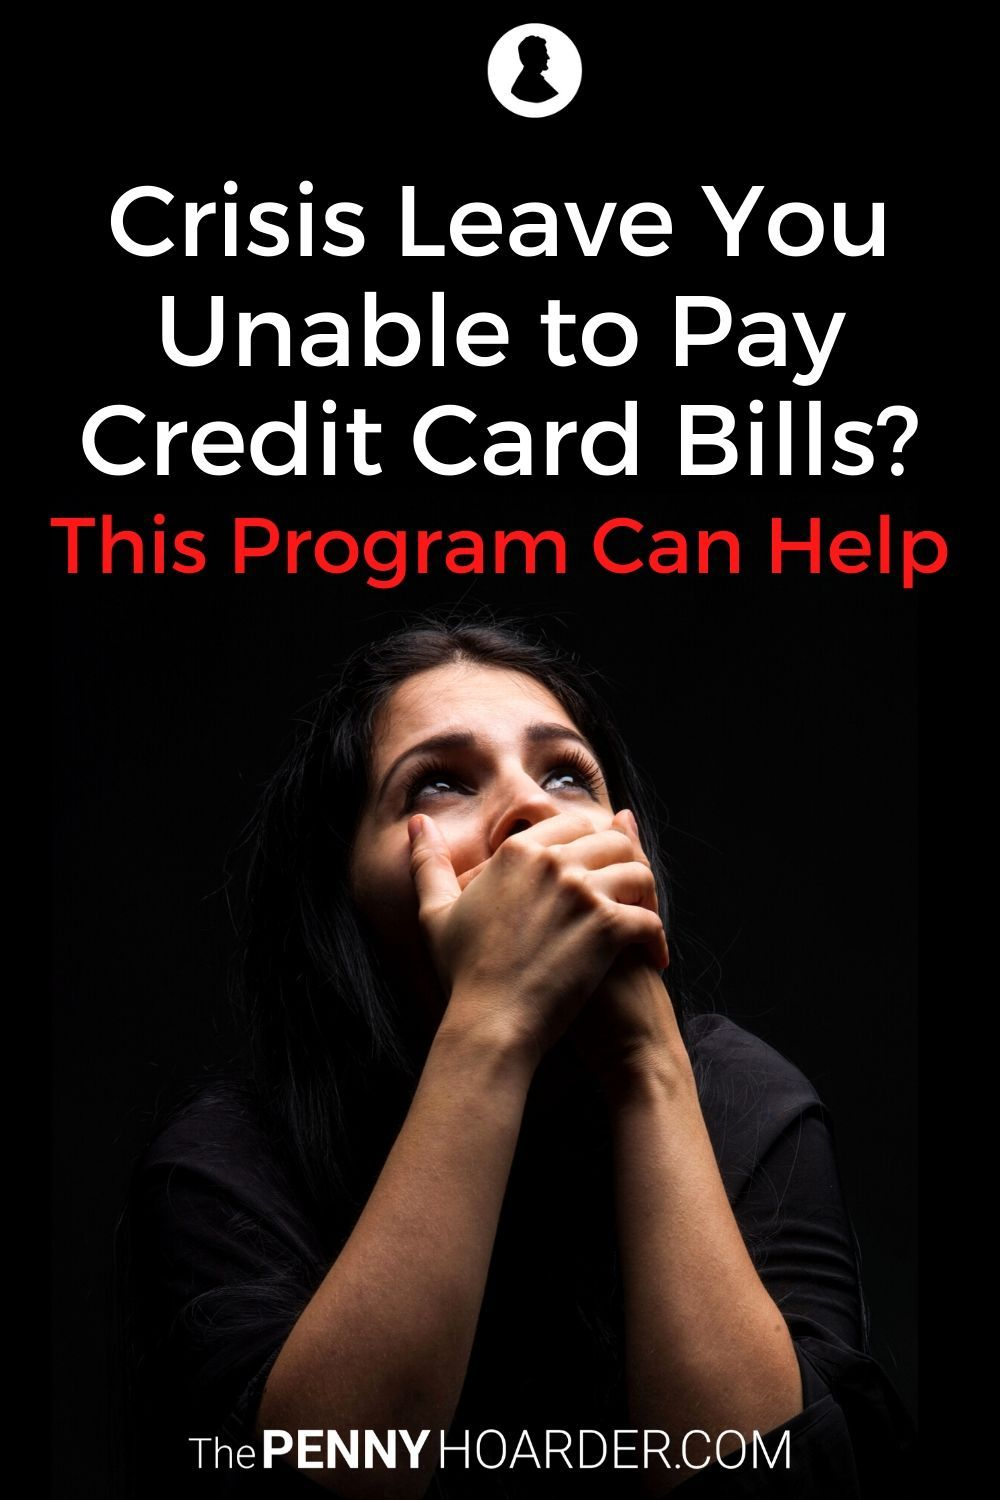 Crisis leave you unable to pay credit card bills this